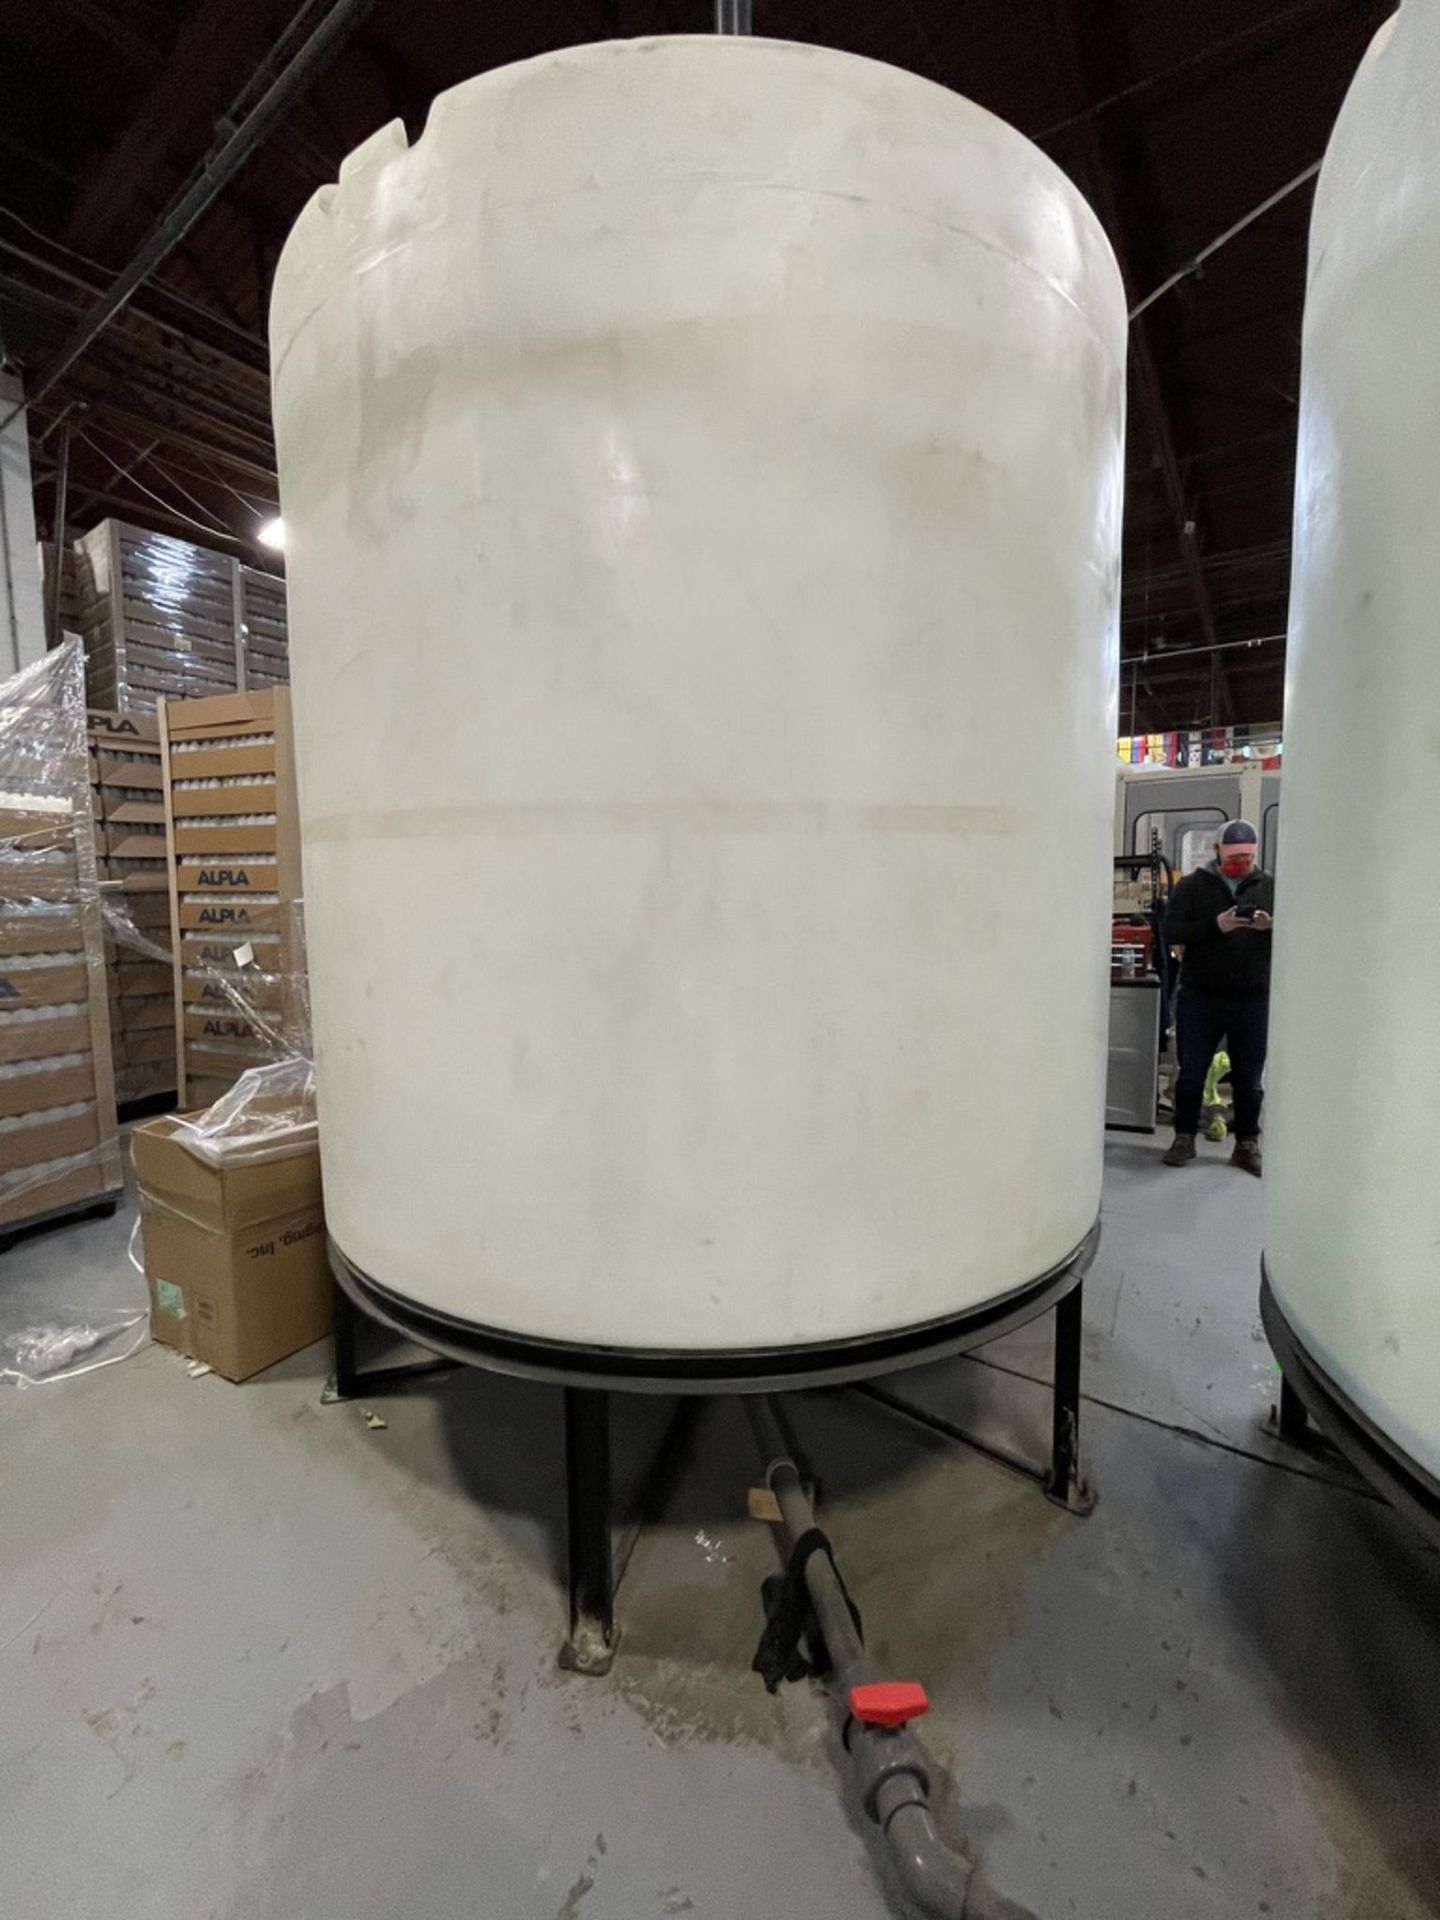 ACE ROTO MOLD APPROX. 2,200 GALLON TANK WITH STEEL FRAME